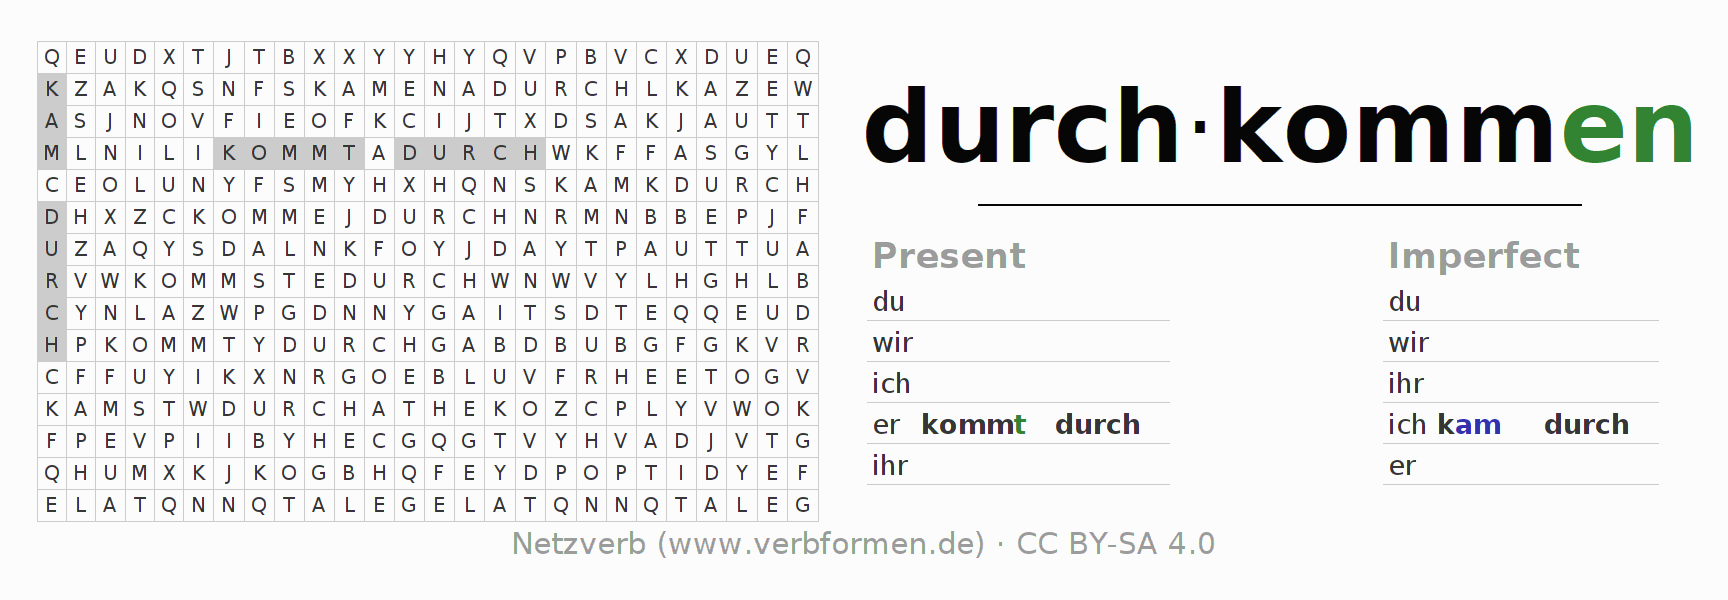 Word search puzzle for the conjugation of the verb durchkommen